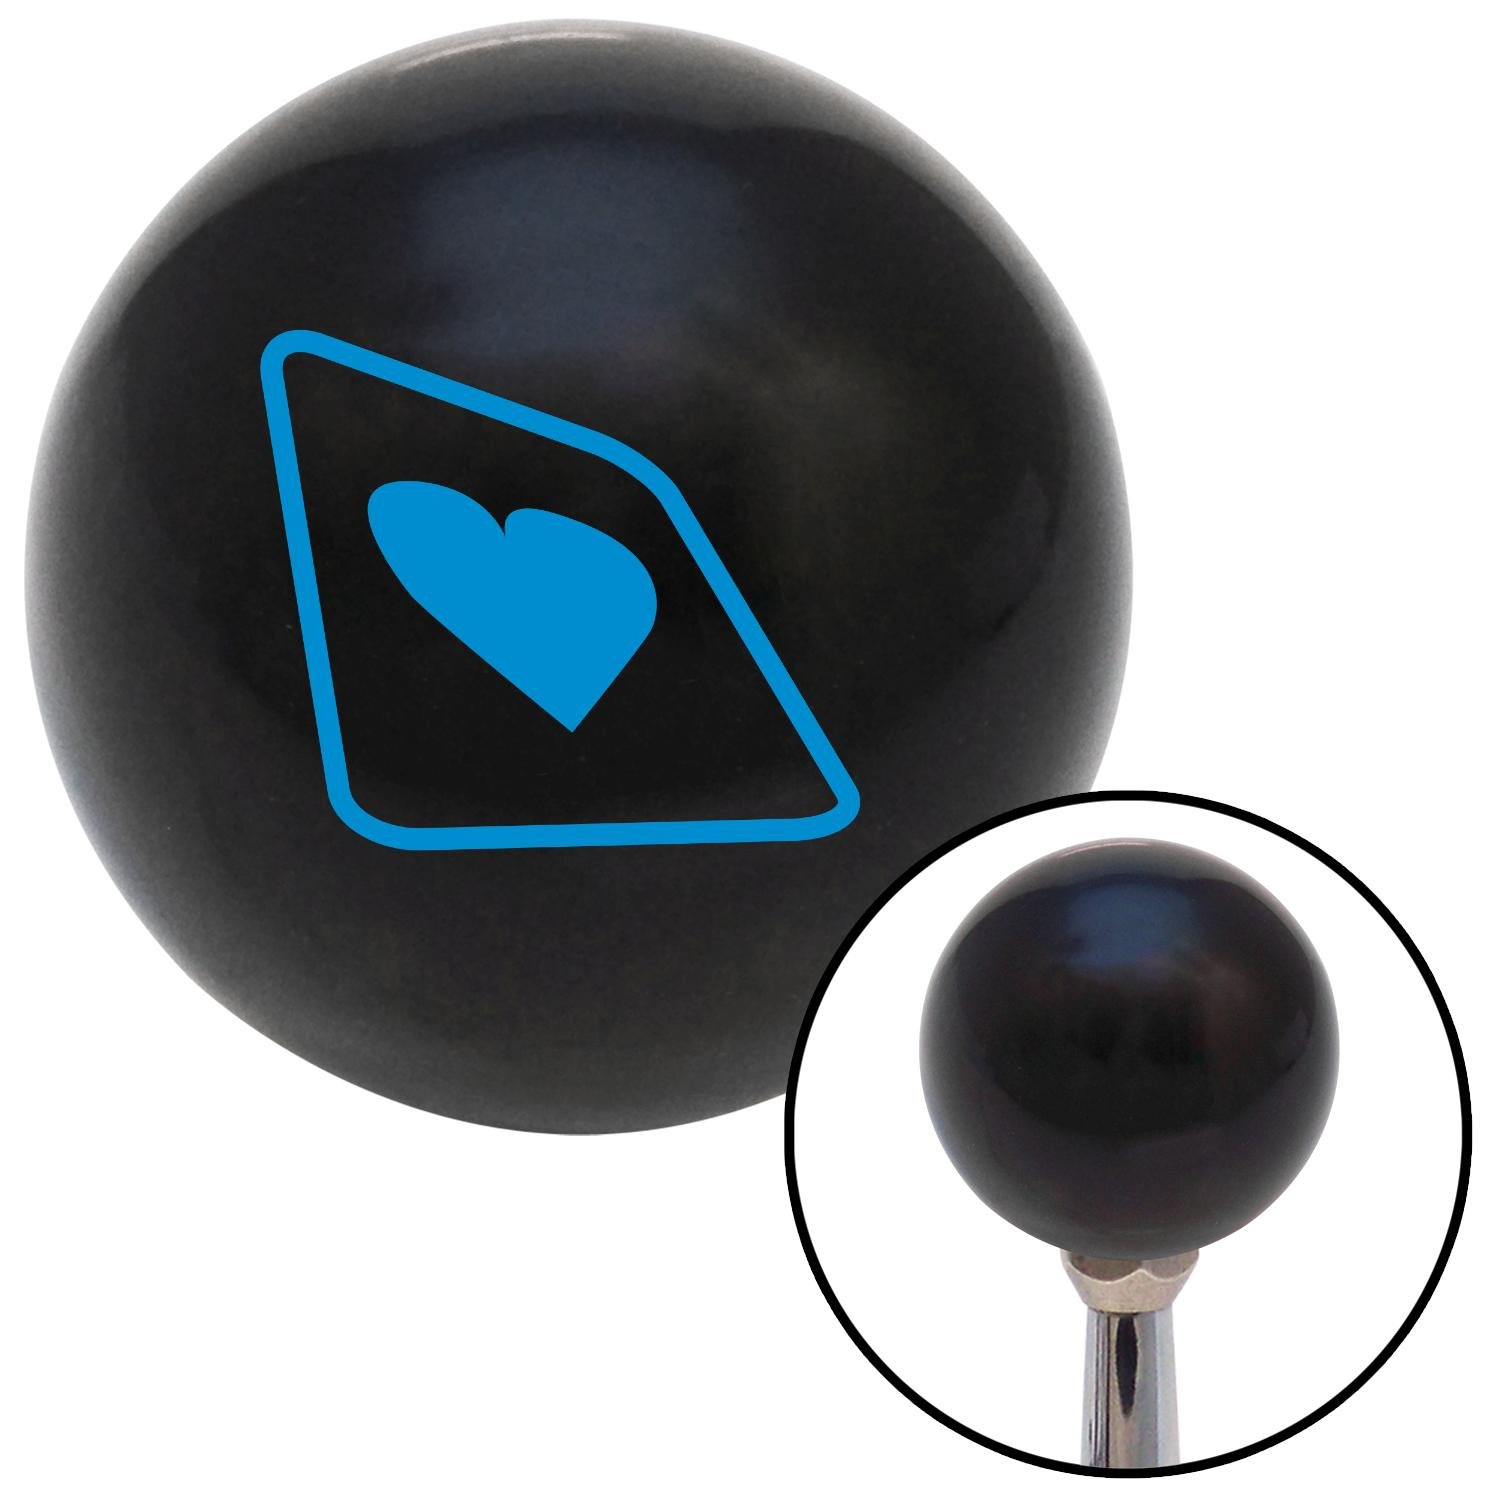 American Shifter 104233 Black Shift Knob with M16 x 1.5 Insert Blue Heart on a Card